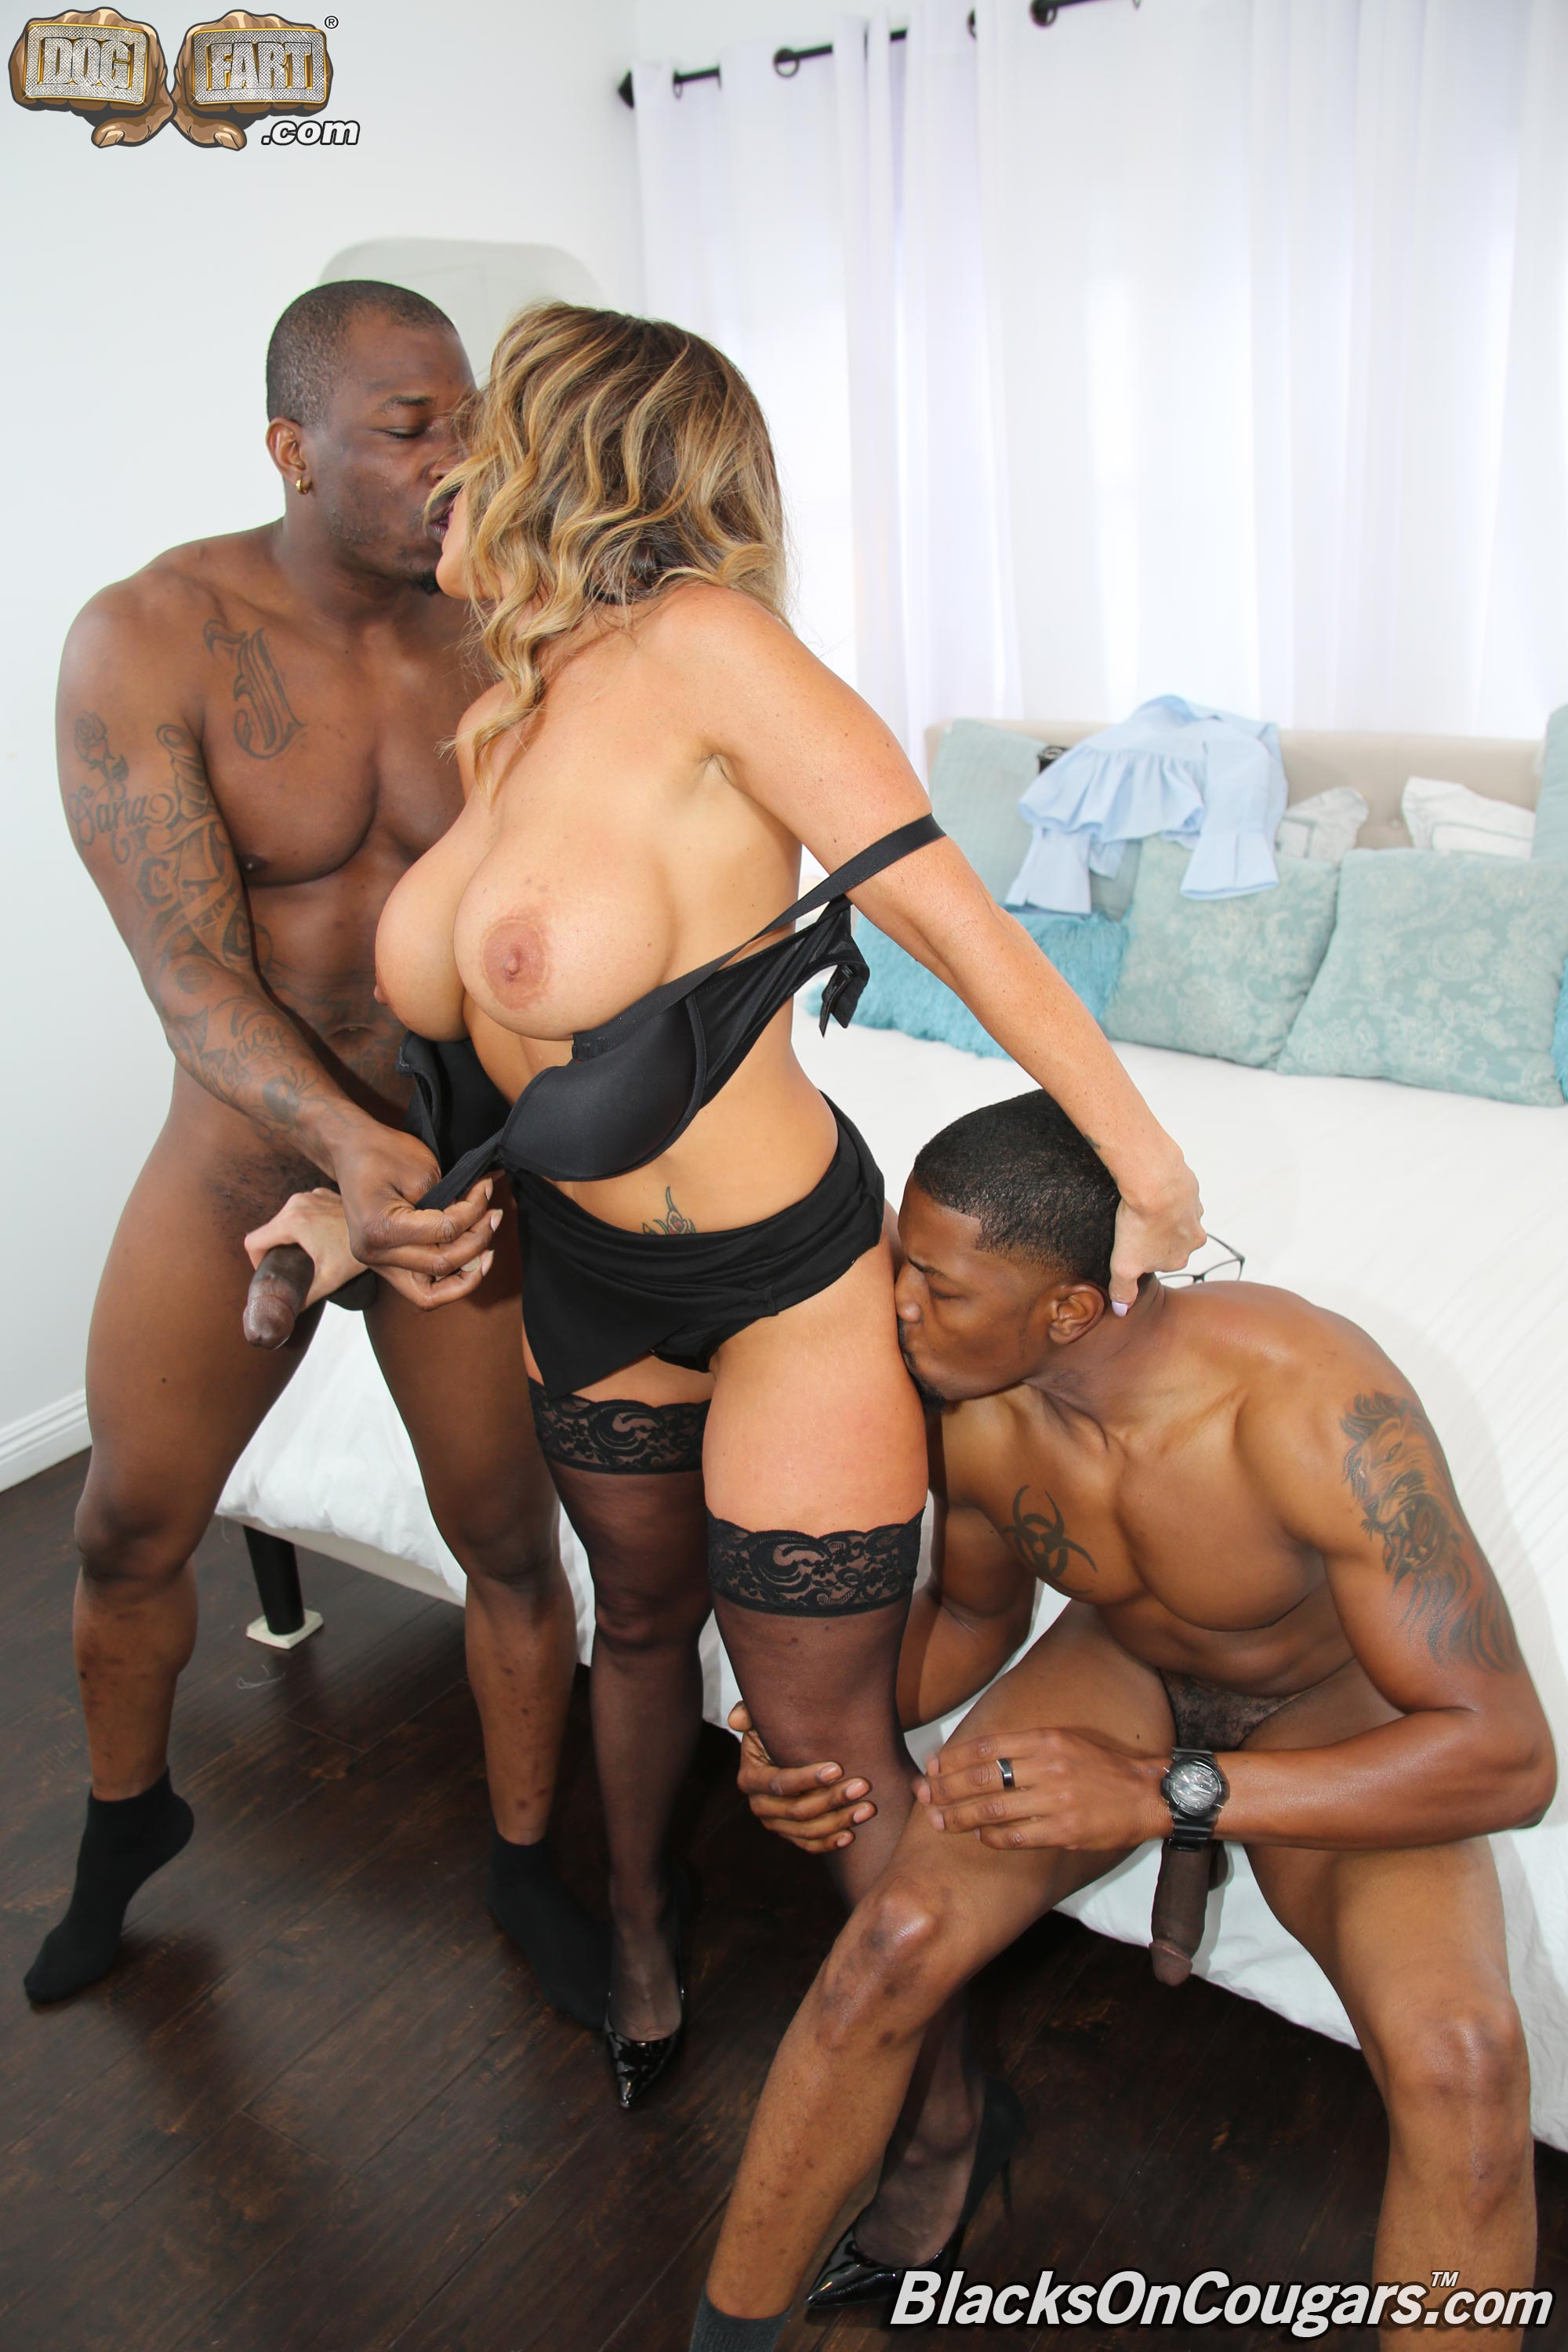 Dogfart 'Aubrey Black - Blacks On Cougars' starring Aubrey Black (photo 17)